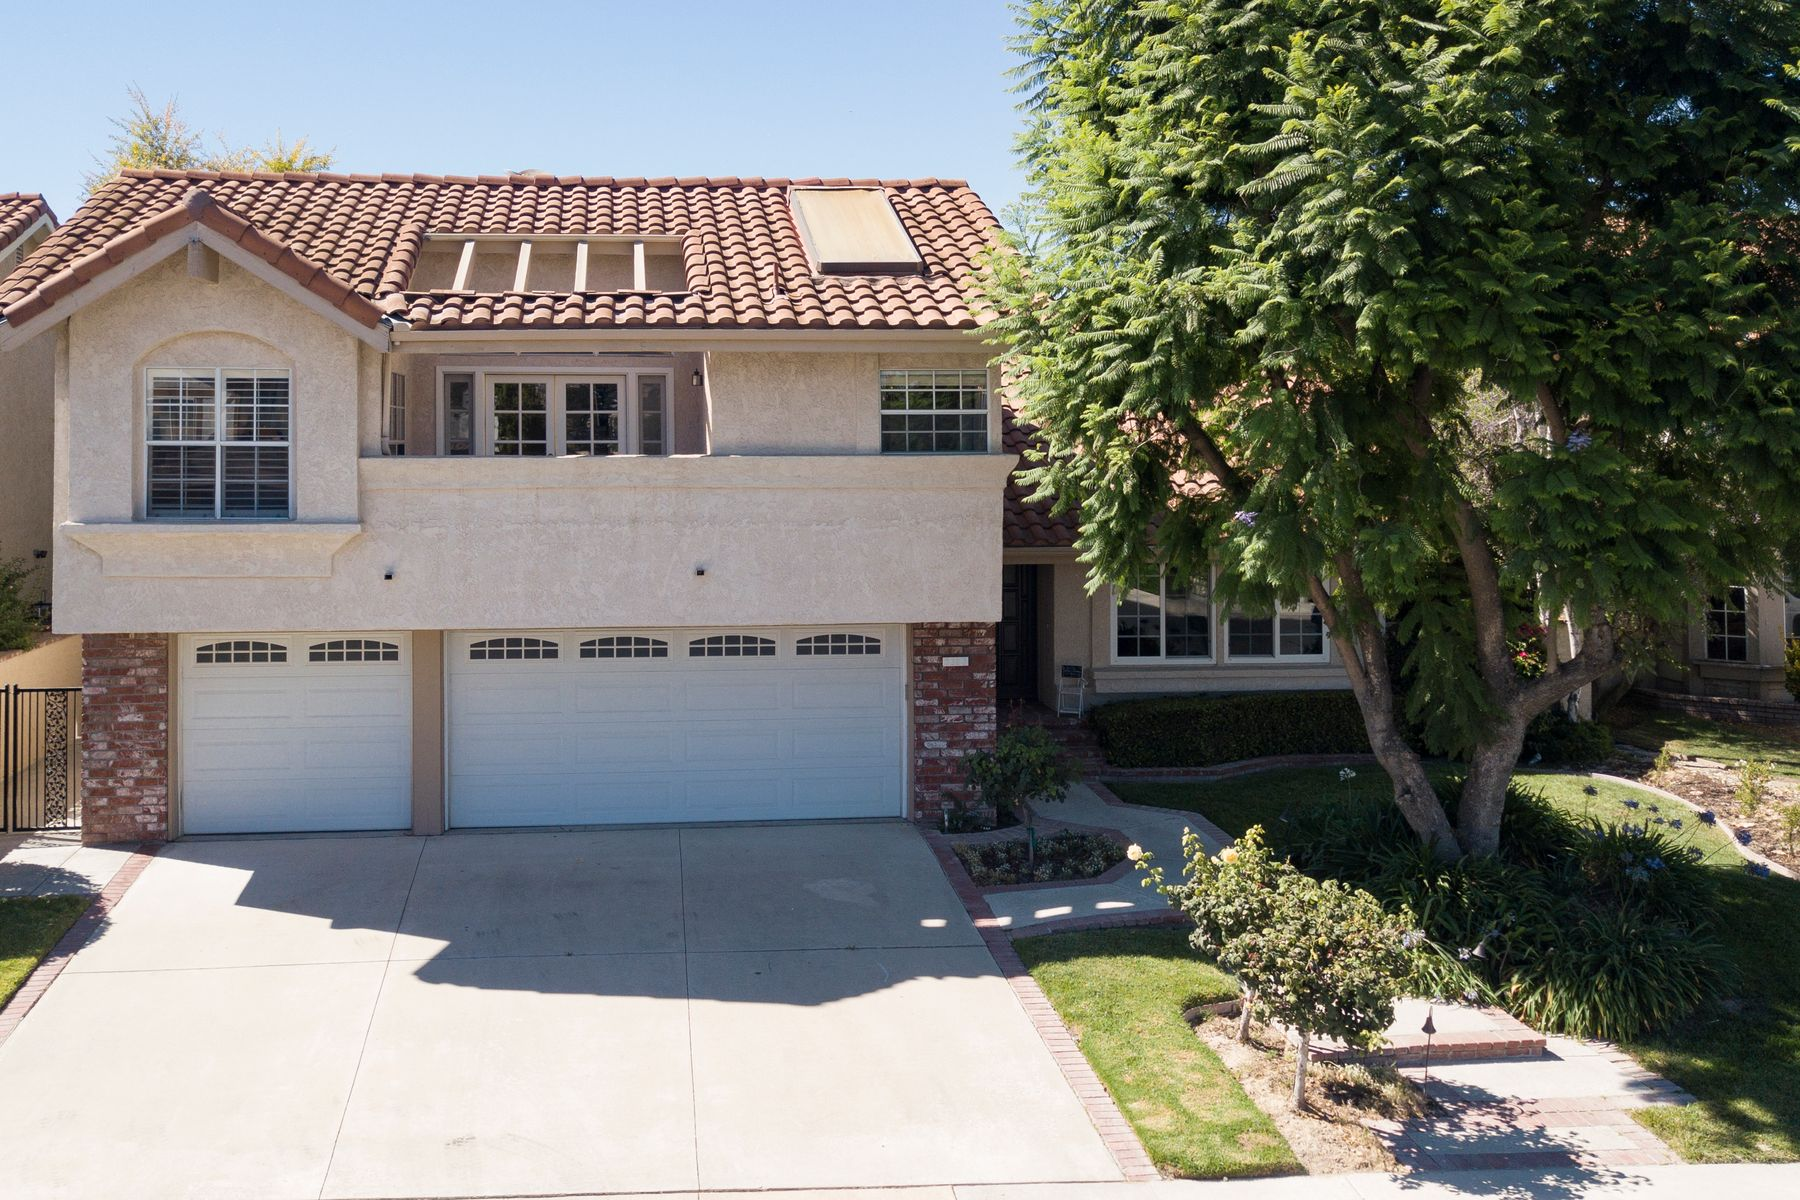 Single Family Homes for Sale at 3367 Montagne Way Thousand Oaks, California 91362 United States